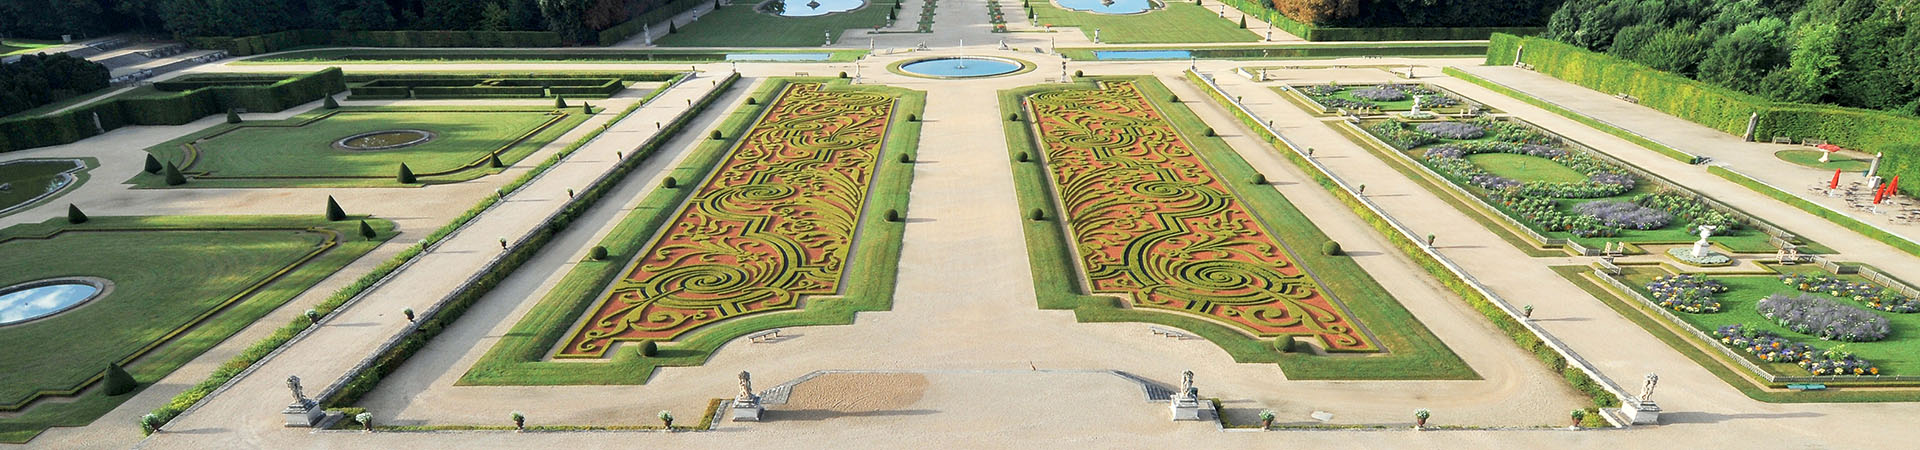 High Resolution Wallpaper | Vaux-le-Vicomte 1920x450 px